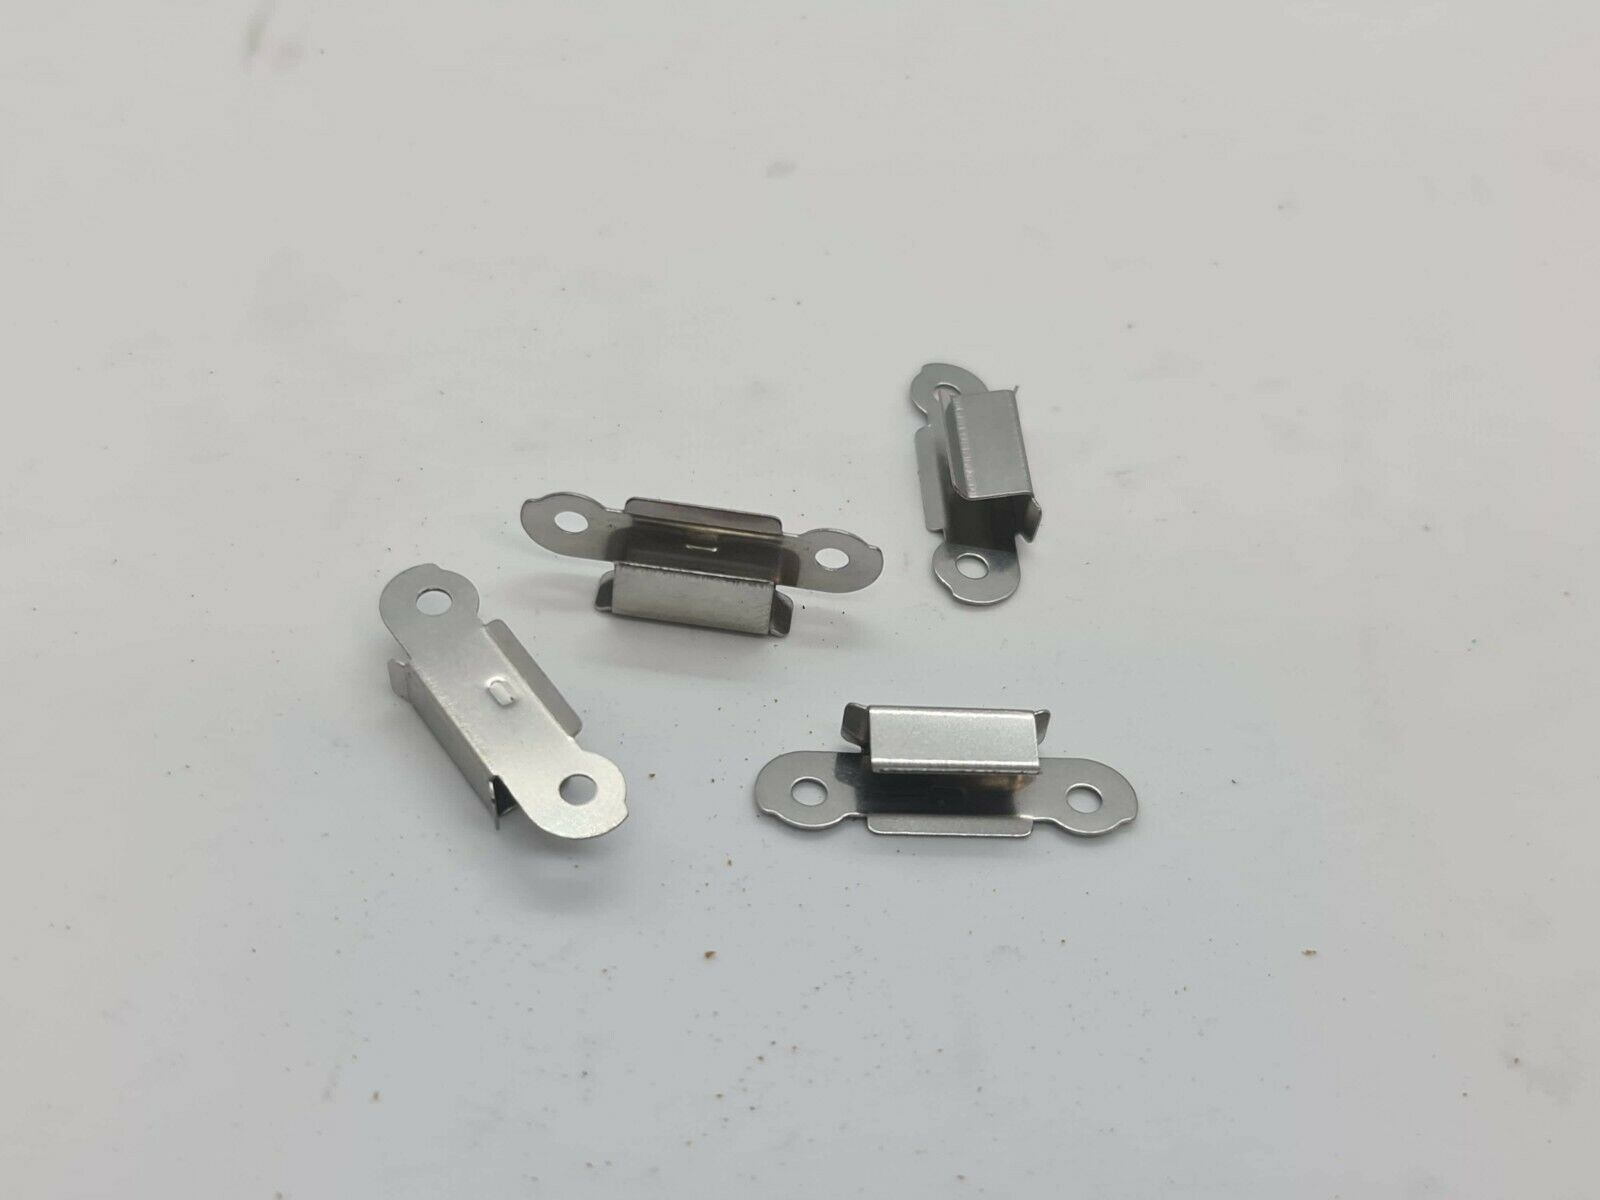 3D Printer Glass Bed Clips X4 Stainless Steel Build Platform Retainers